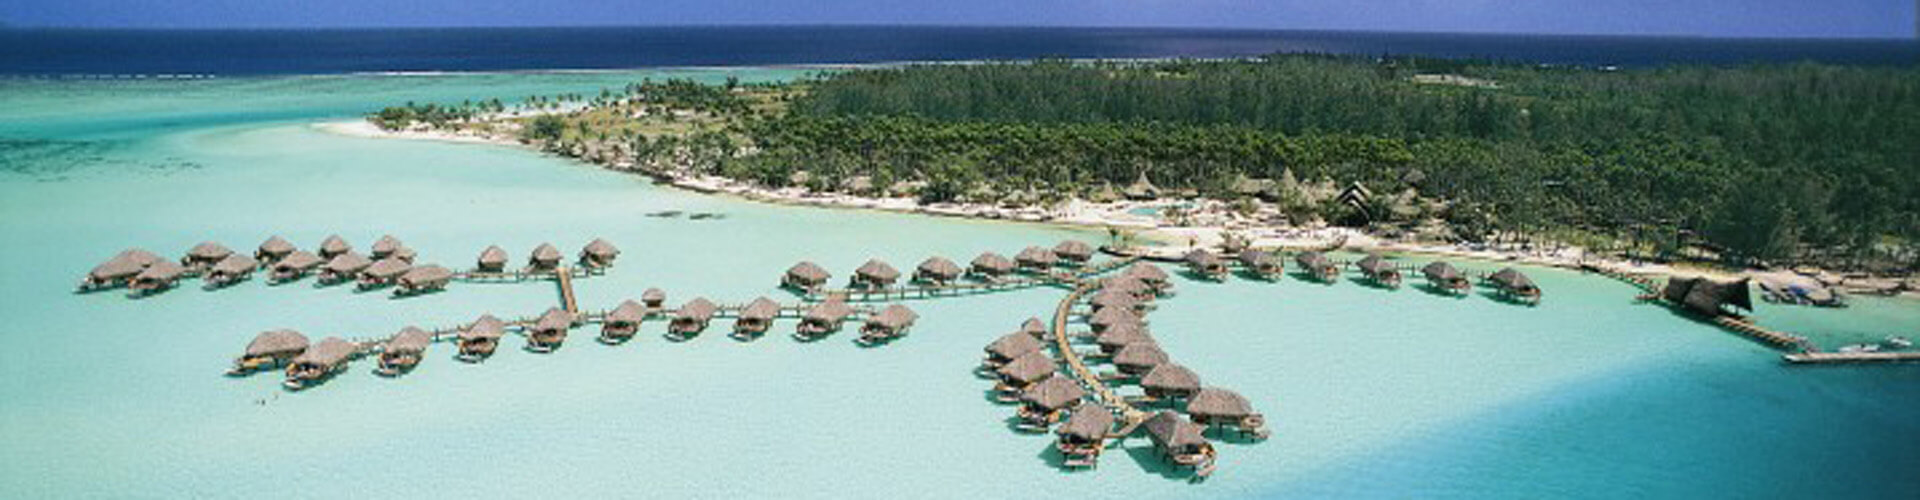 bora_bora_pearl_beach_resort_spa_-_1920x500px.jpg